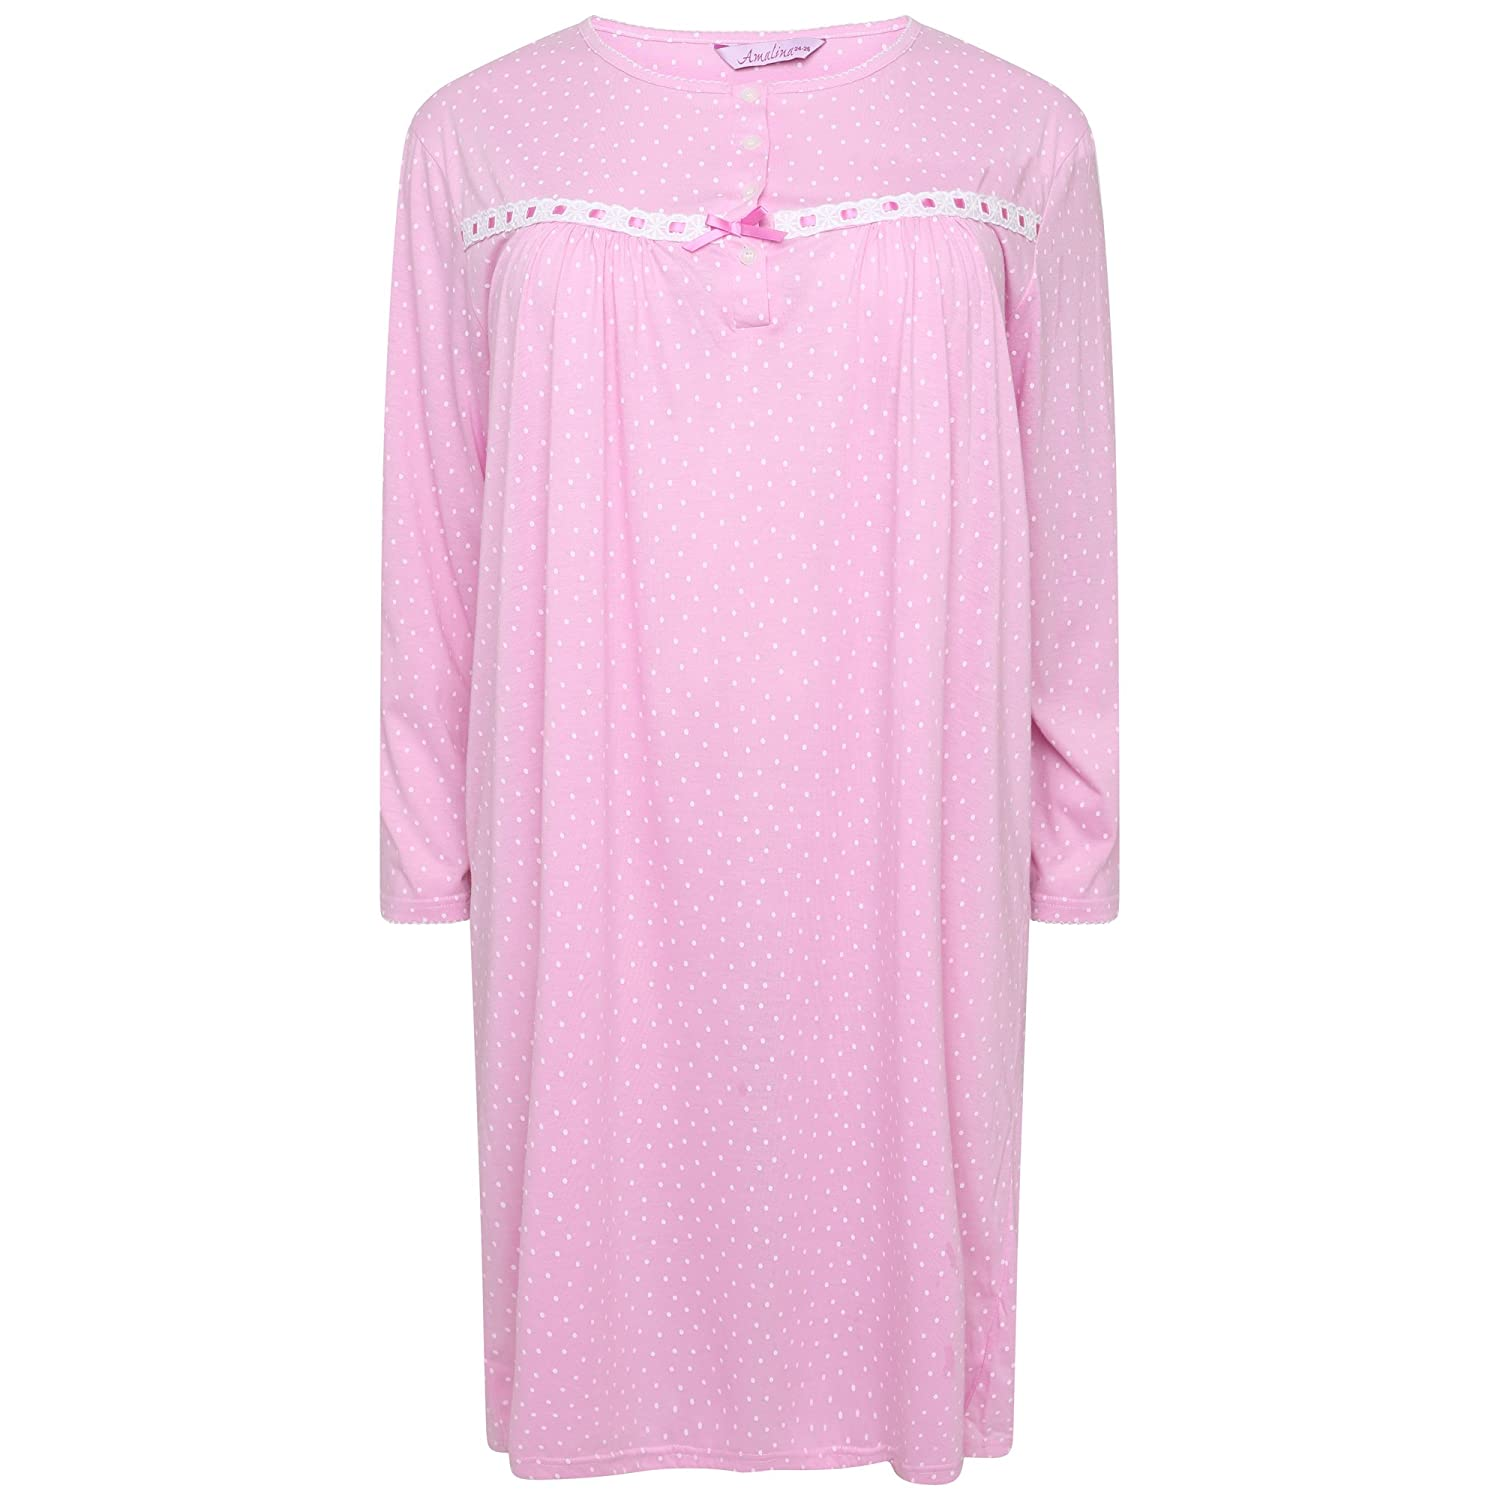 Amalina Ladies Long Sleeved Jersey Nightdress. Pink Spot or Blue Spot. Sizes 12-14 16-18 20-22 24-26